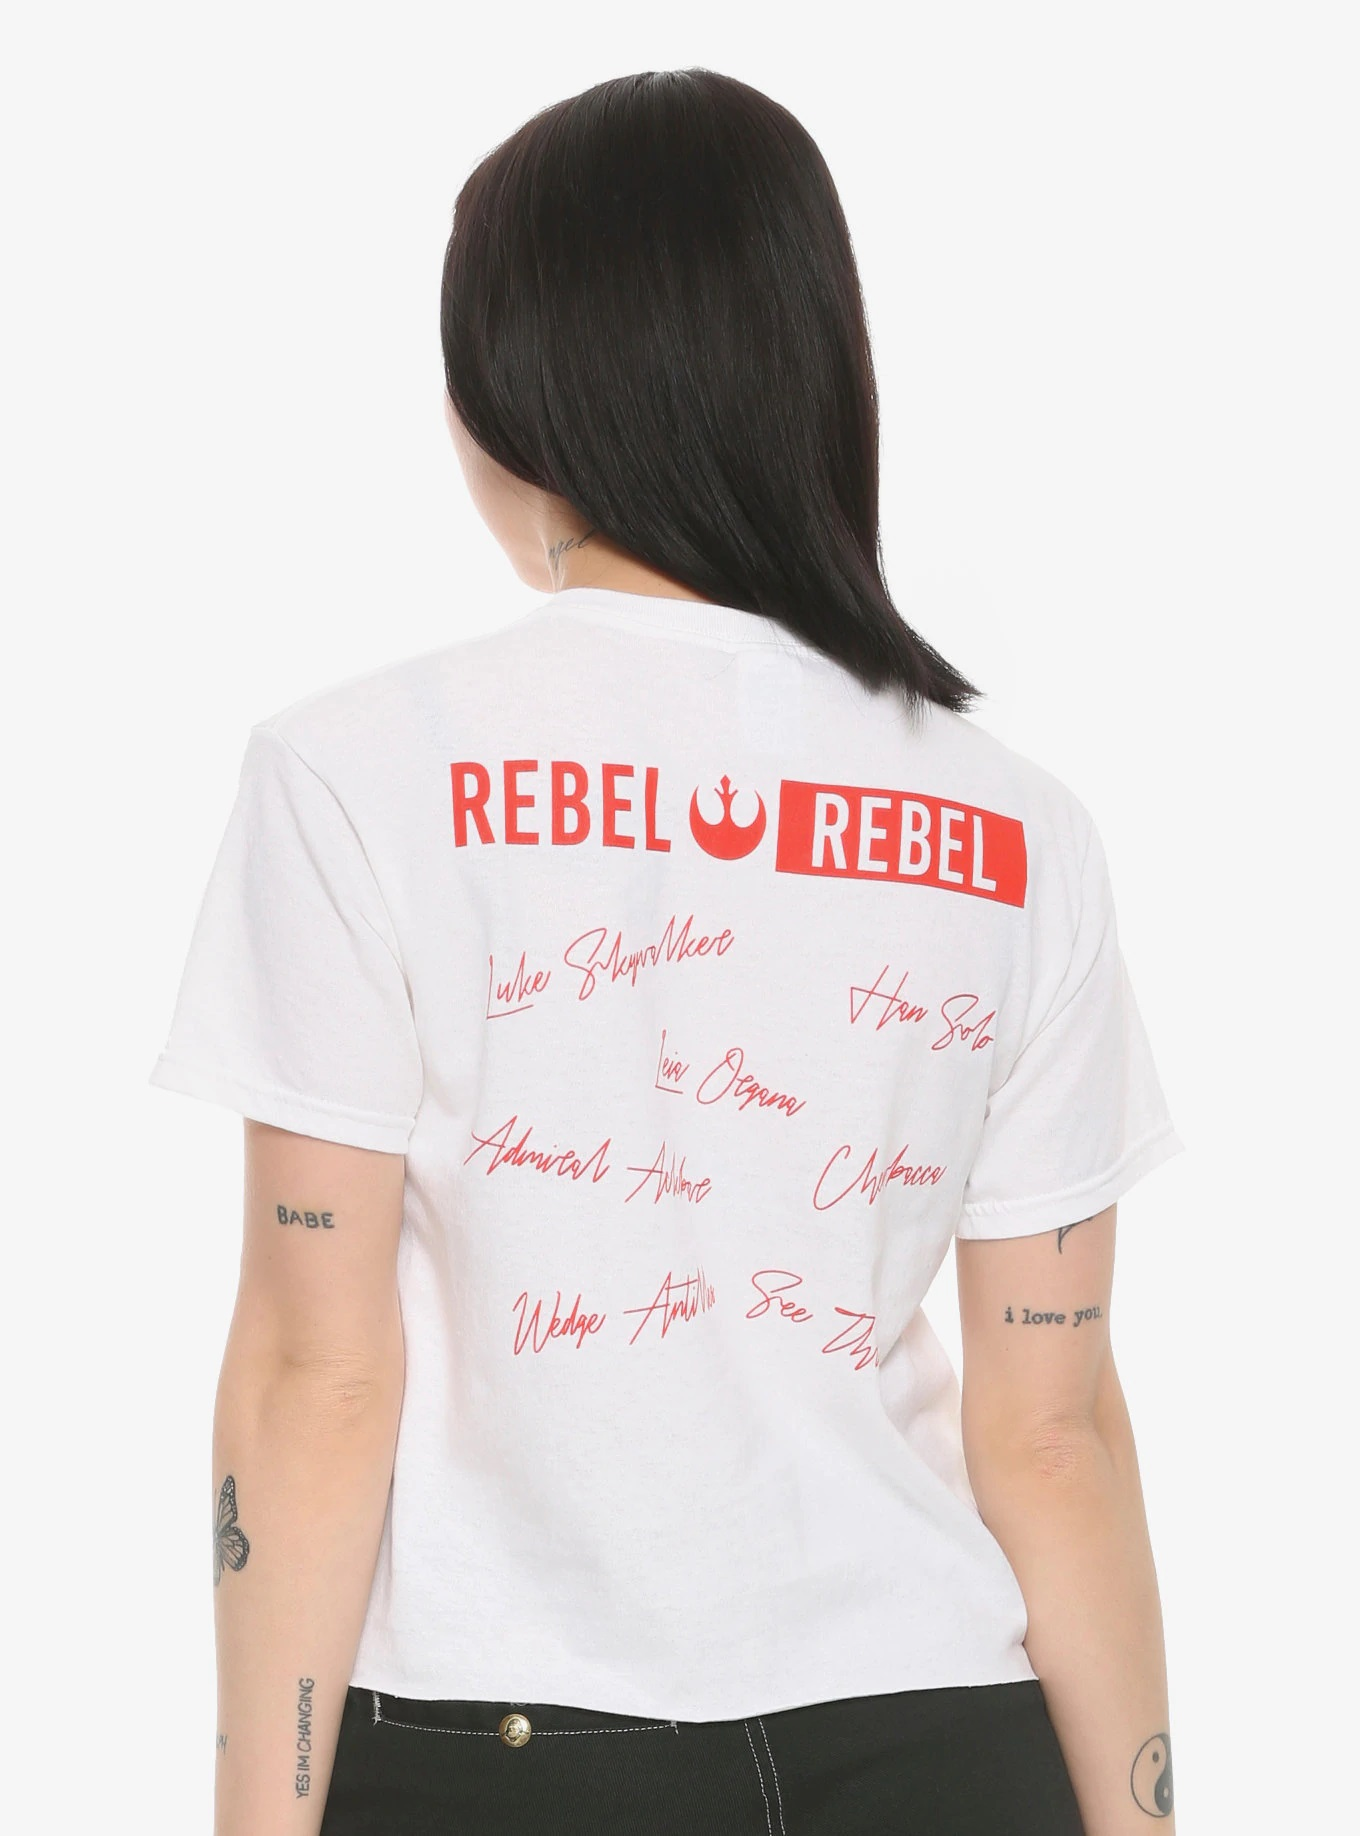 Women's Star Wars Rebel Roll Call T-Shirt at Hot Topic